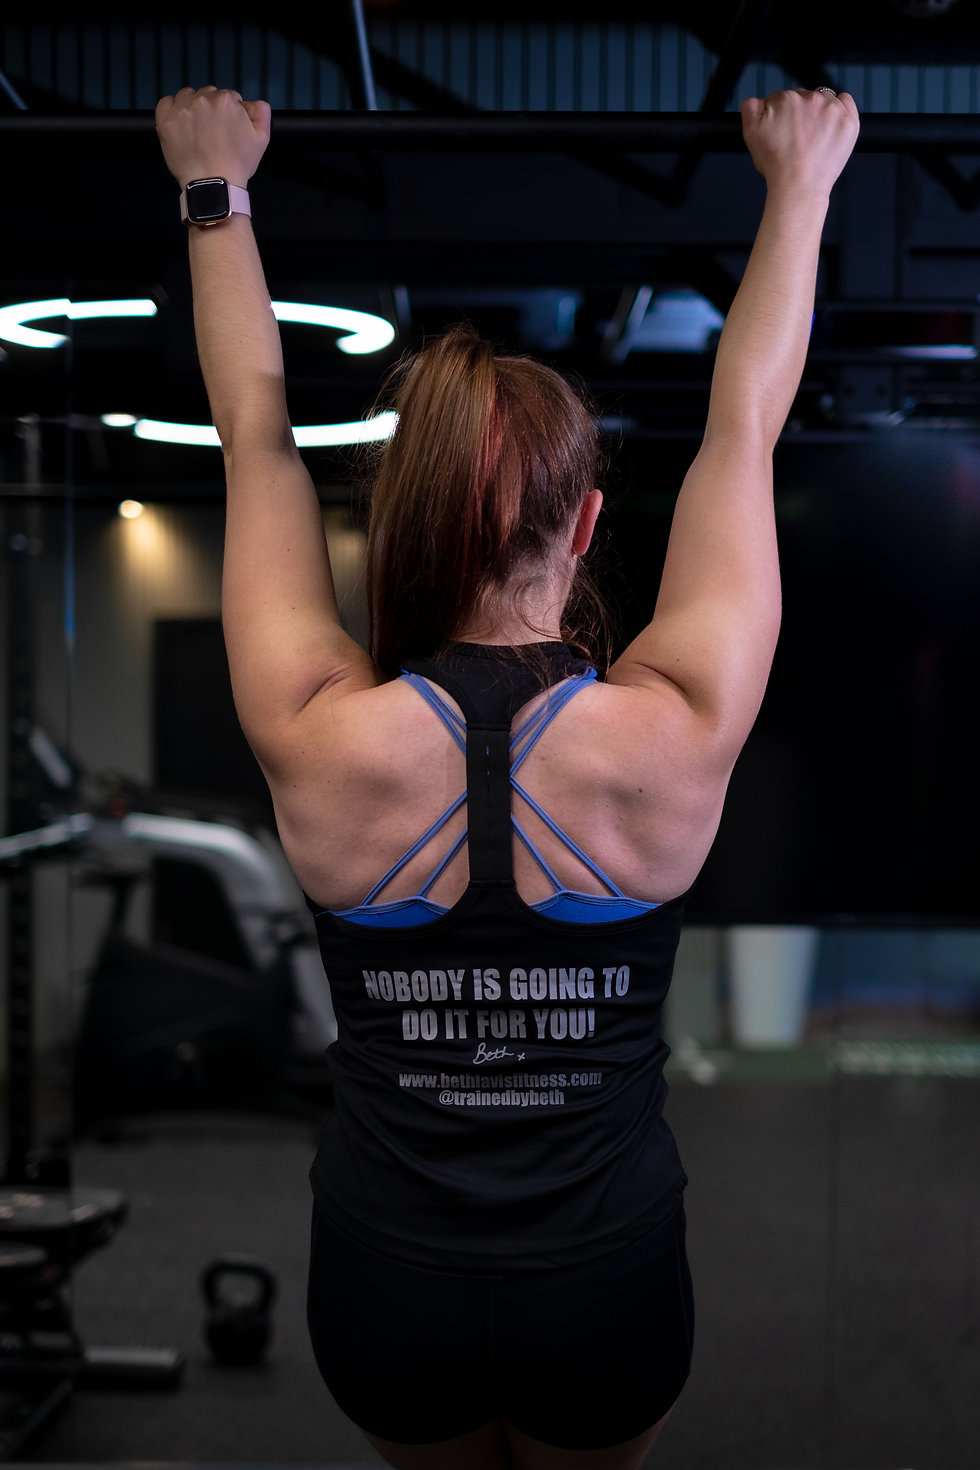 Personal trainer doing a pull-up